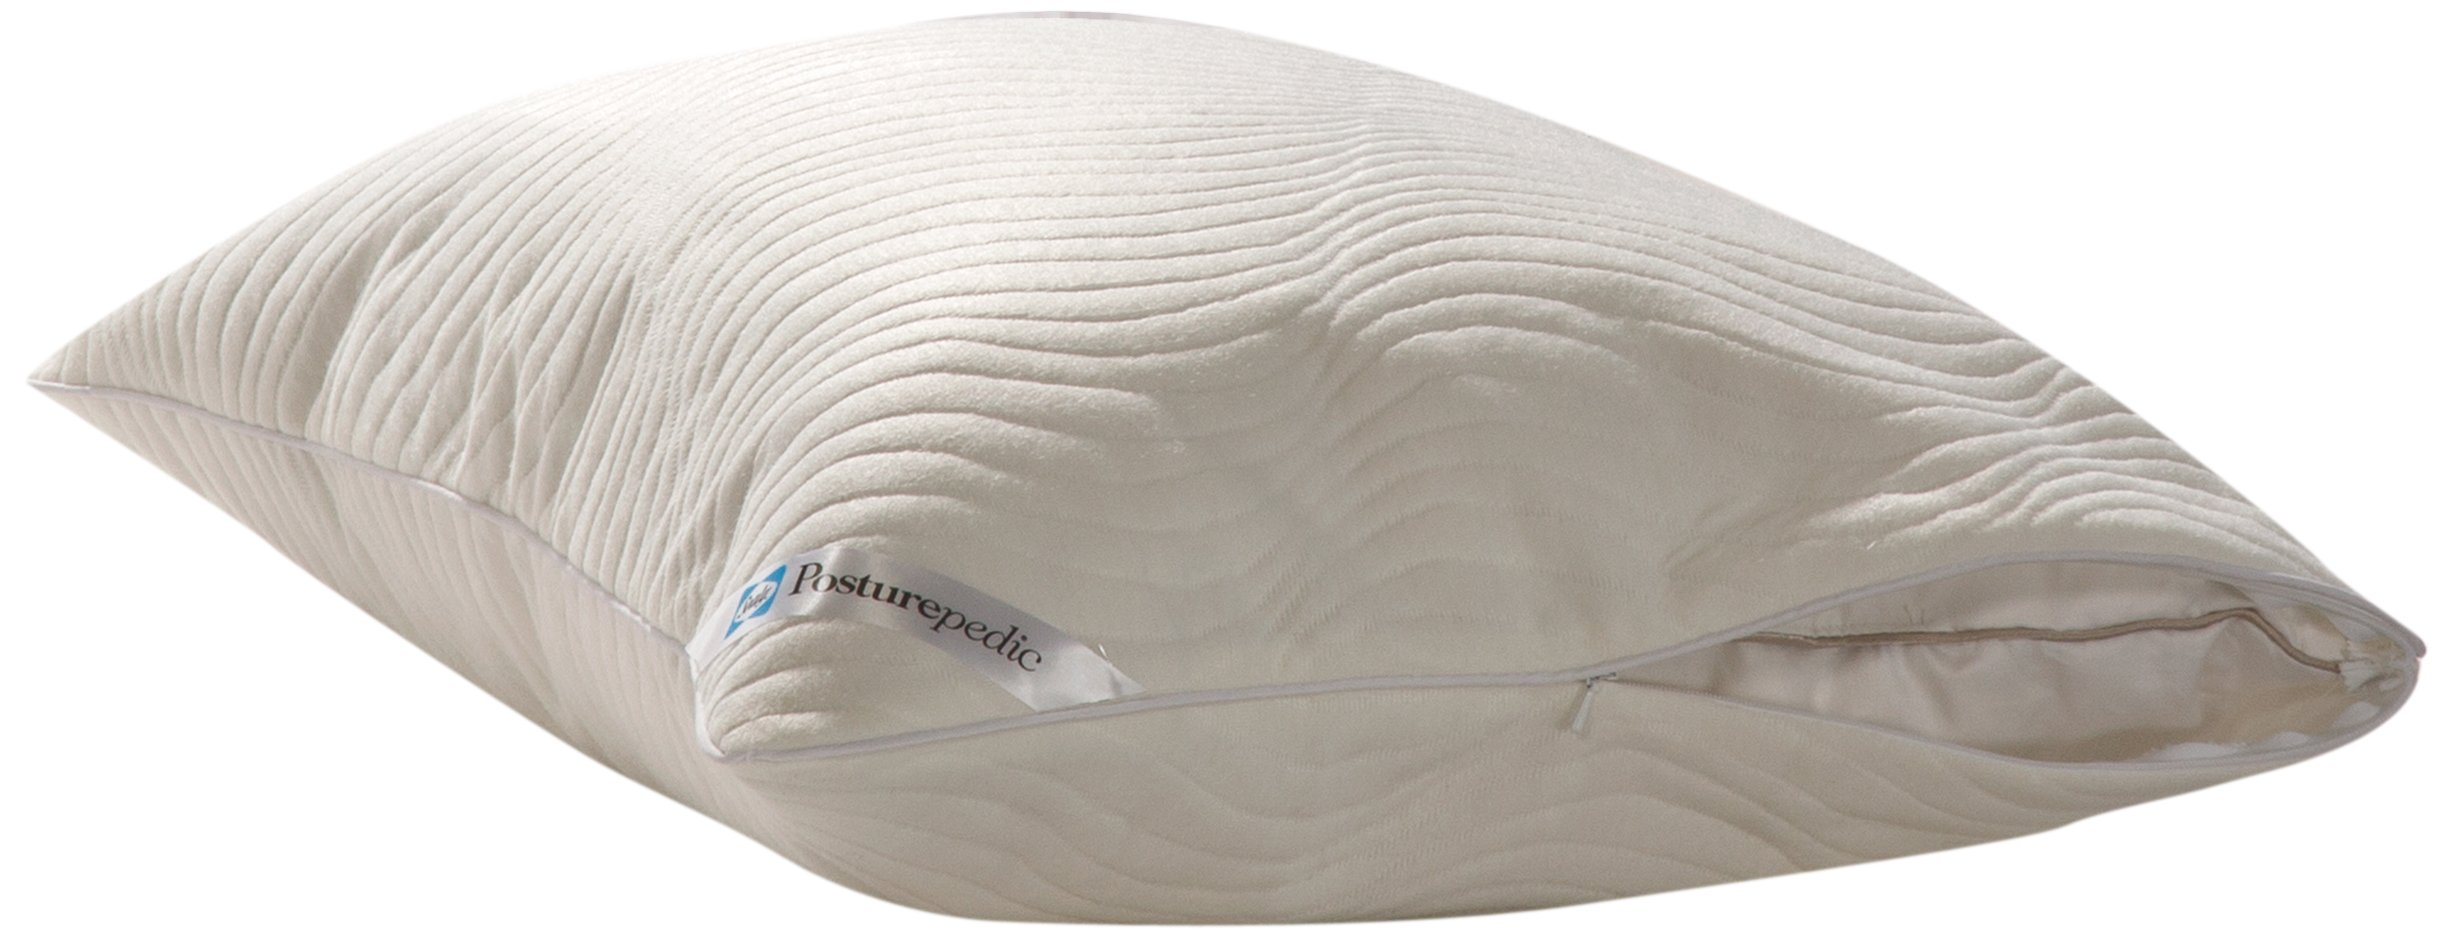 Sealy Posturepedic Cooling Comfort Zippered Pillow Protector